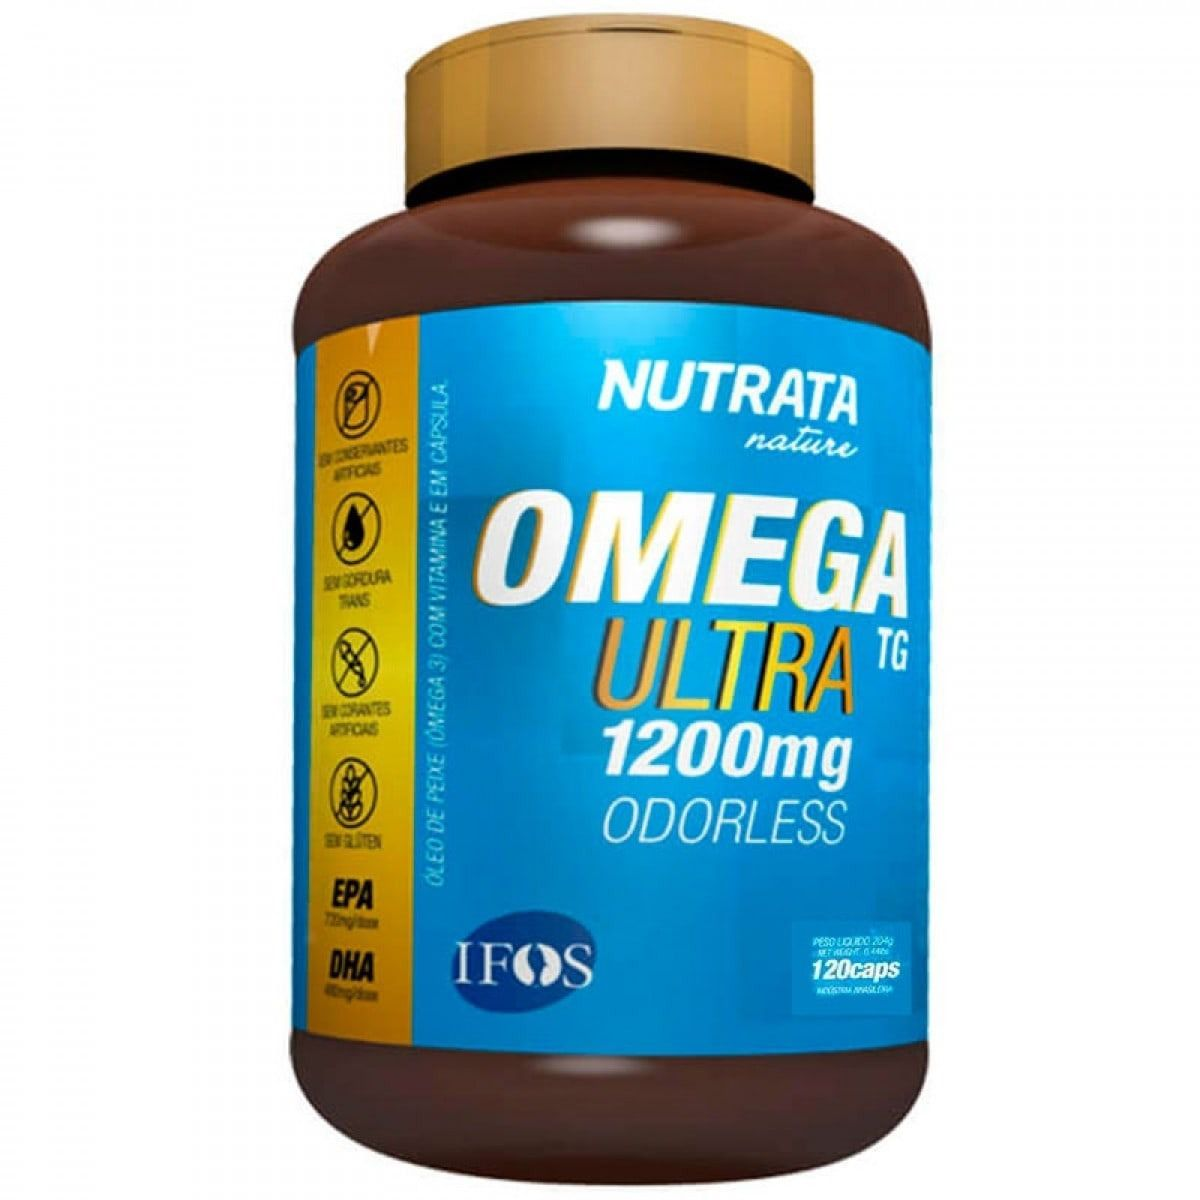 ee88931f1 Omega 3 Ultra TG 1200Mg 120 Caps. - Nutrata - BC Suplementos ...